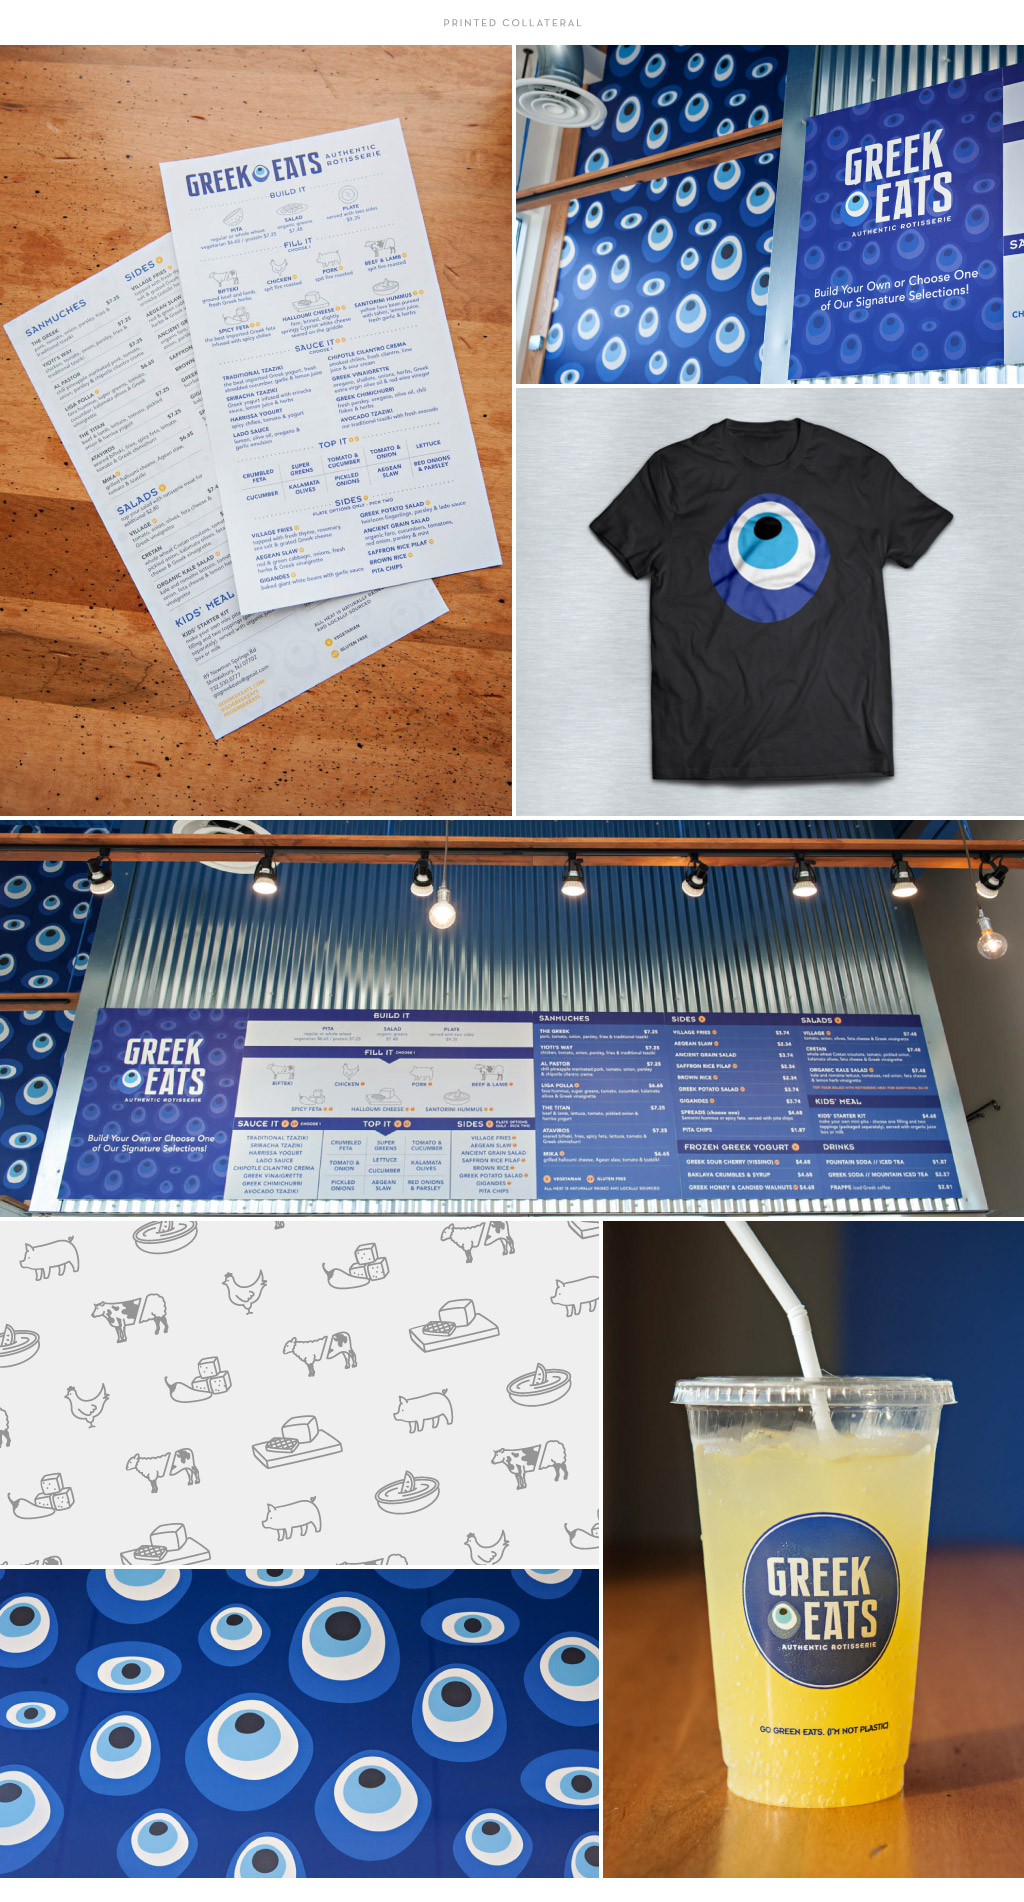 Greek Eats Printed Collateral by M studio